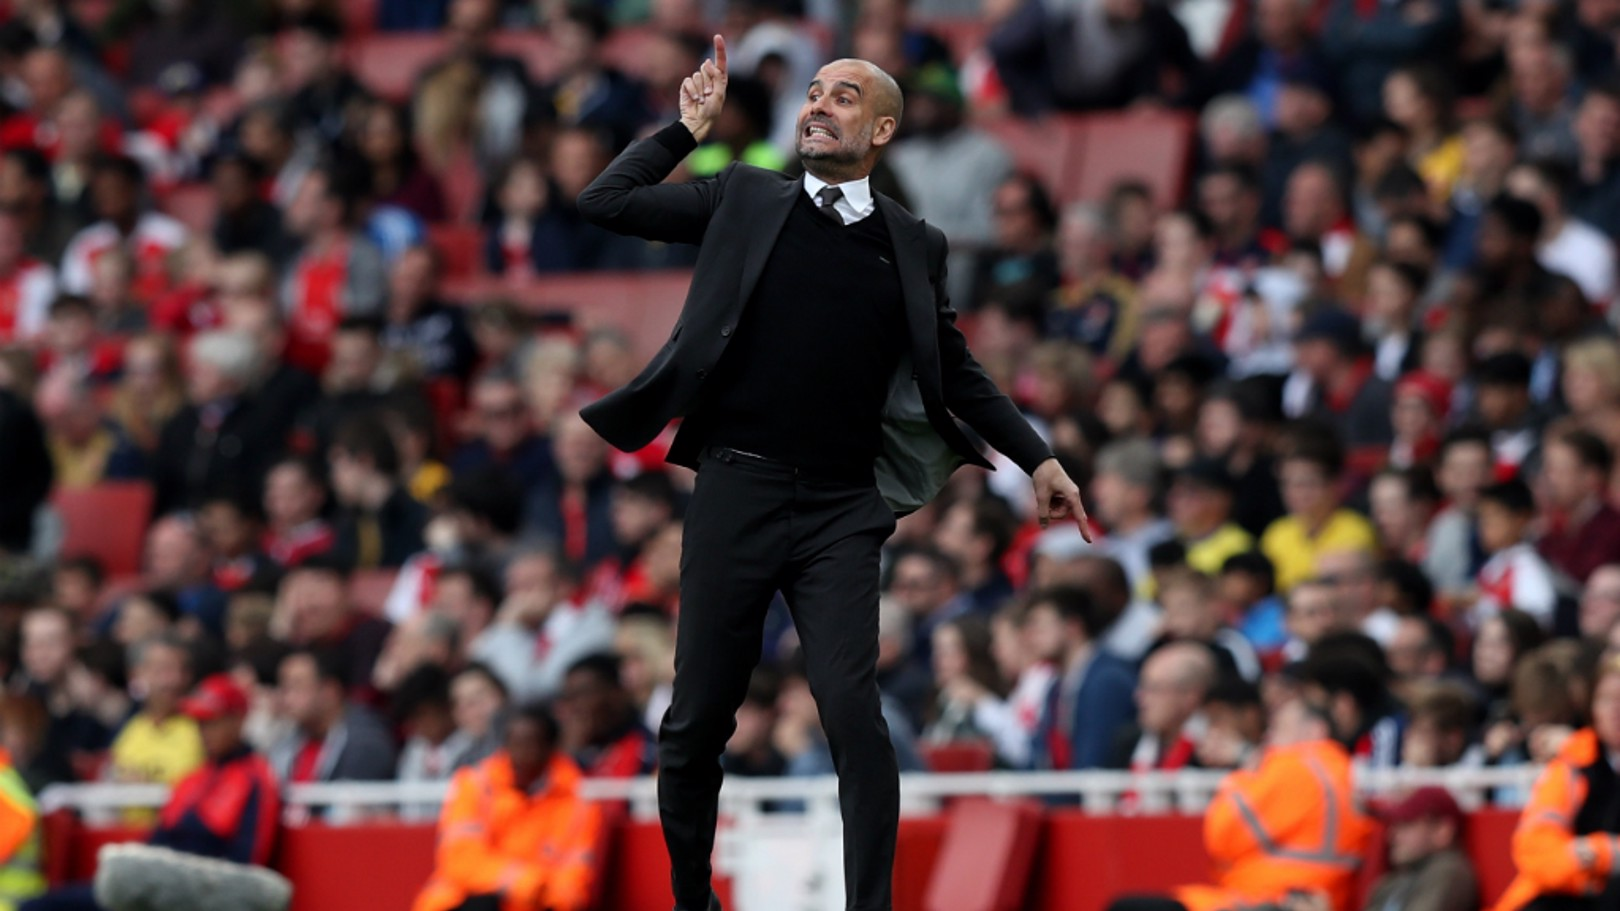 PASSION: Pep Guardiola gestures to his team from the touchline